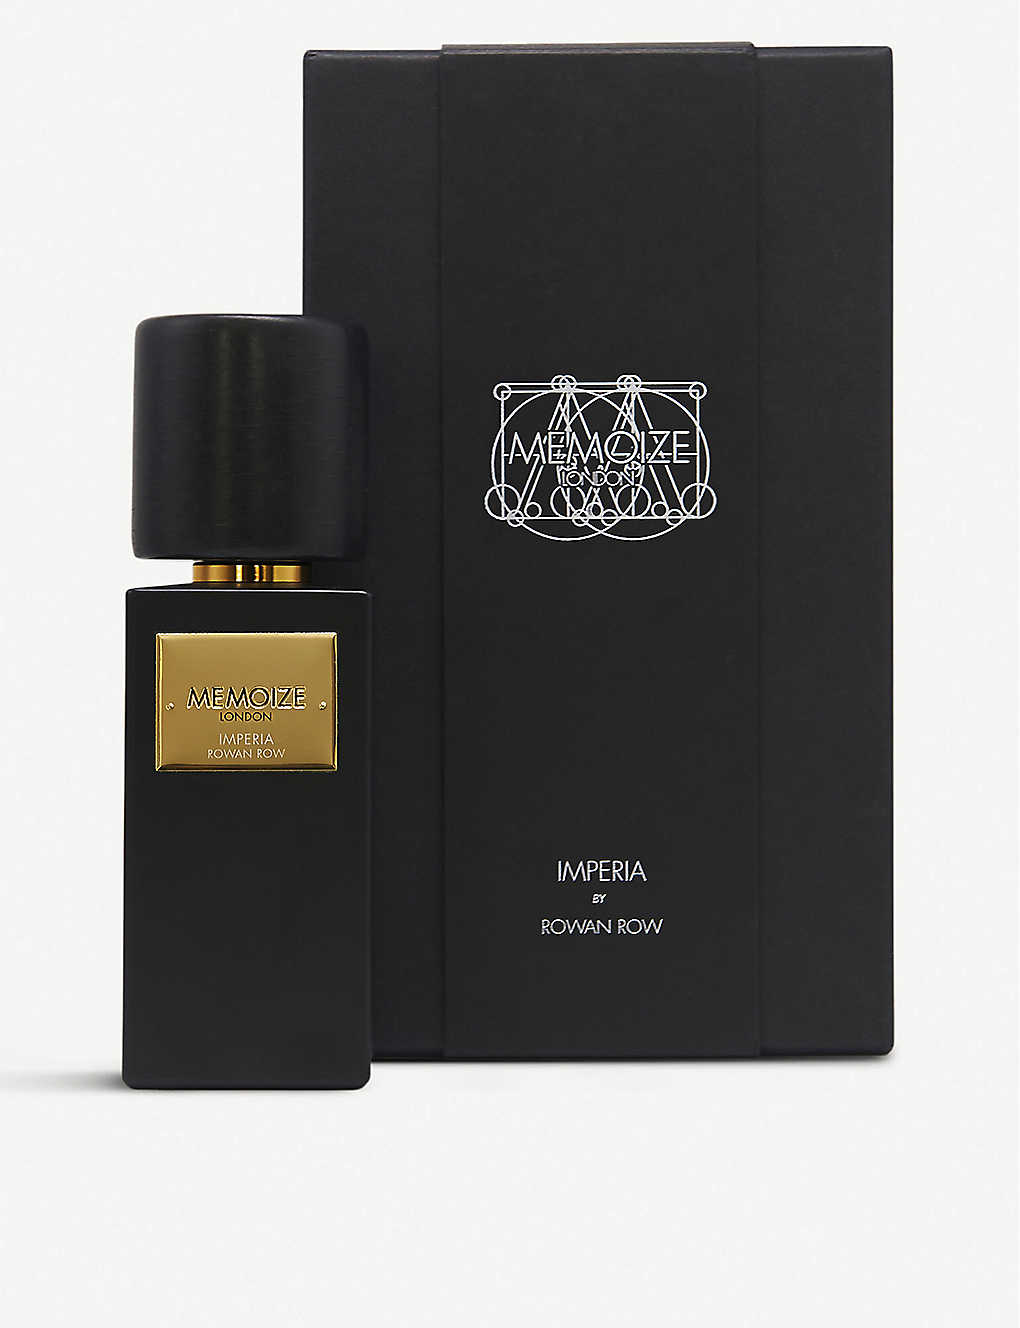 MEMOIZE LONDON: Imperia by Rowan Row extrait de parfum 100ml